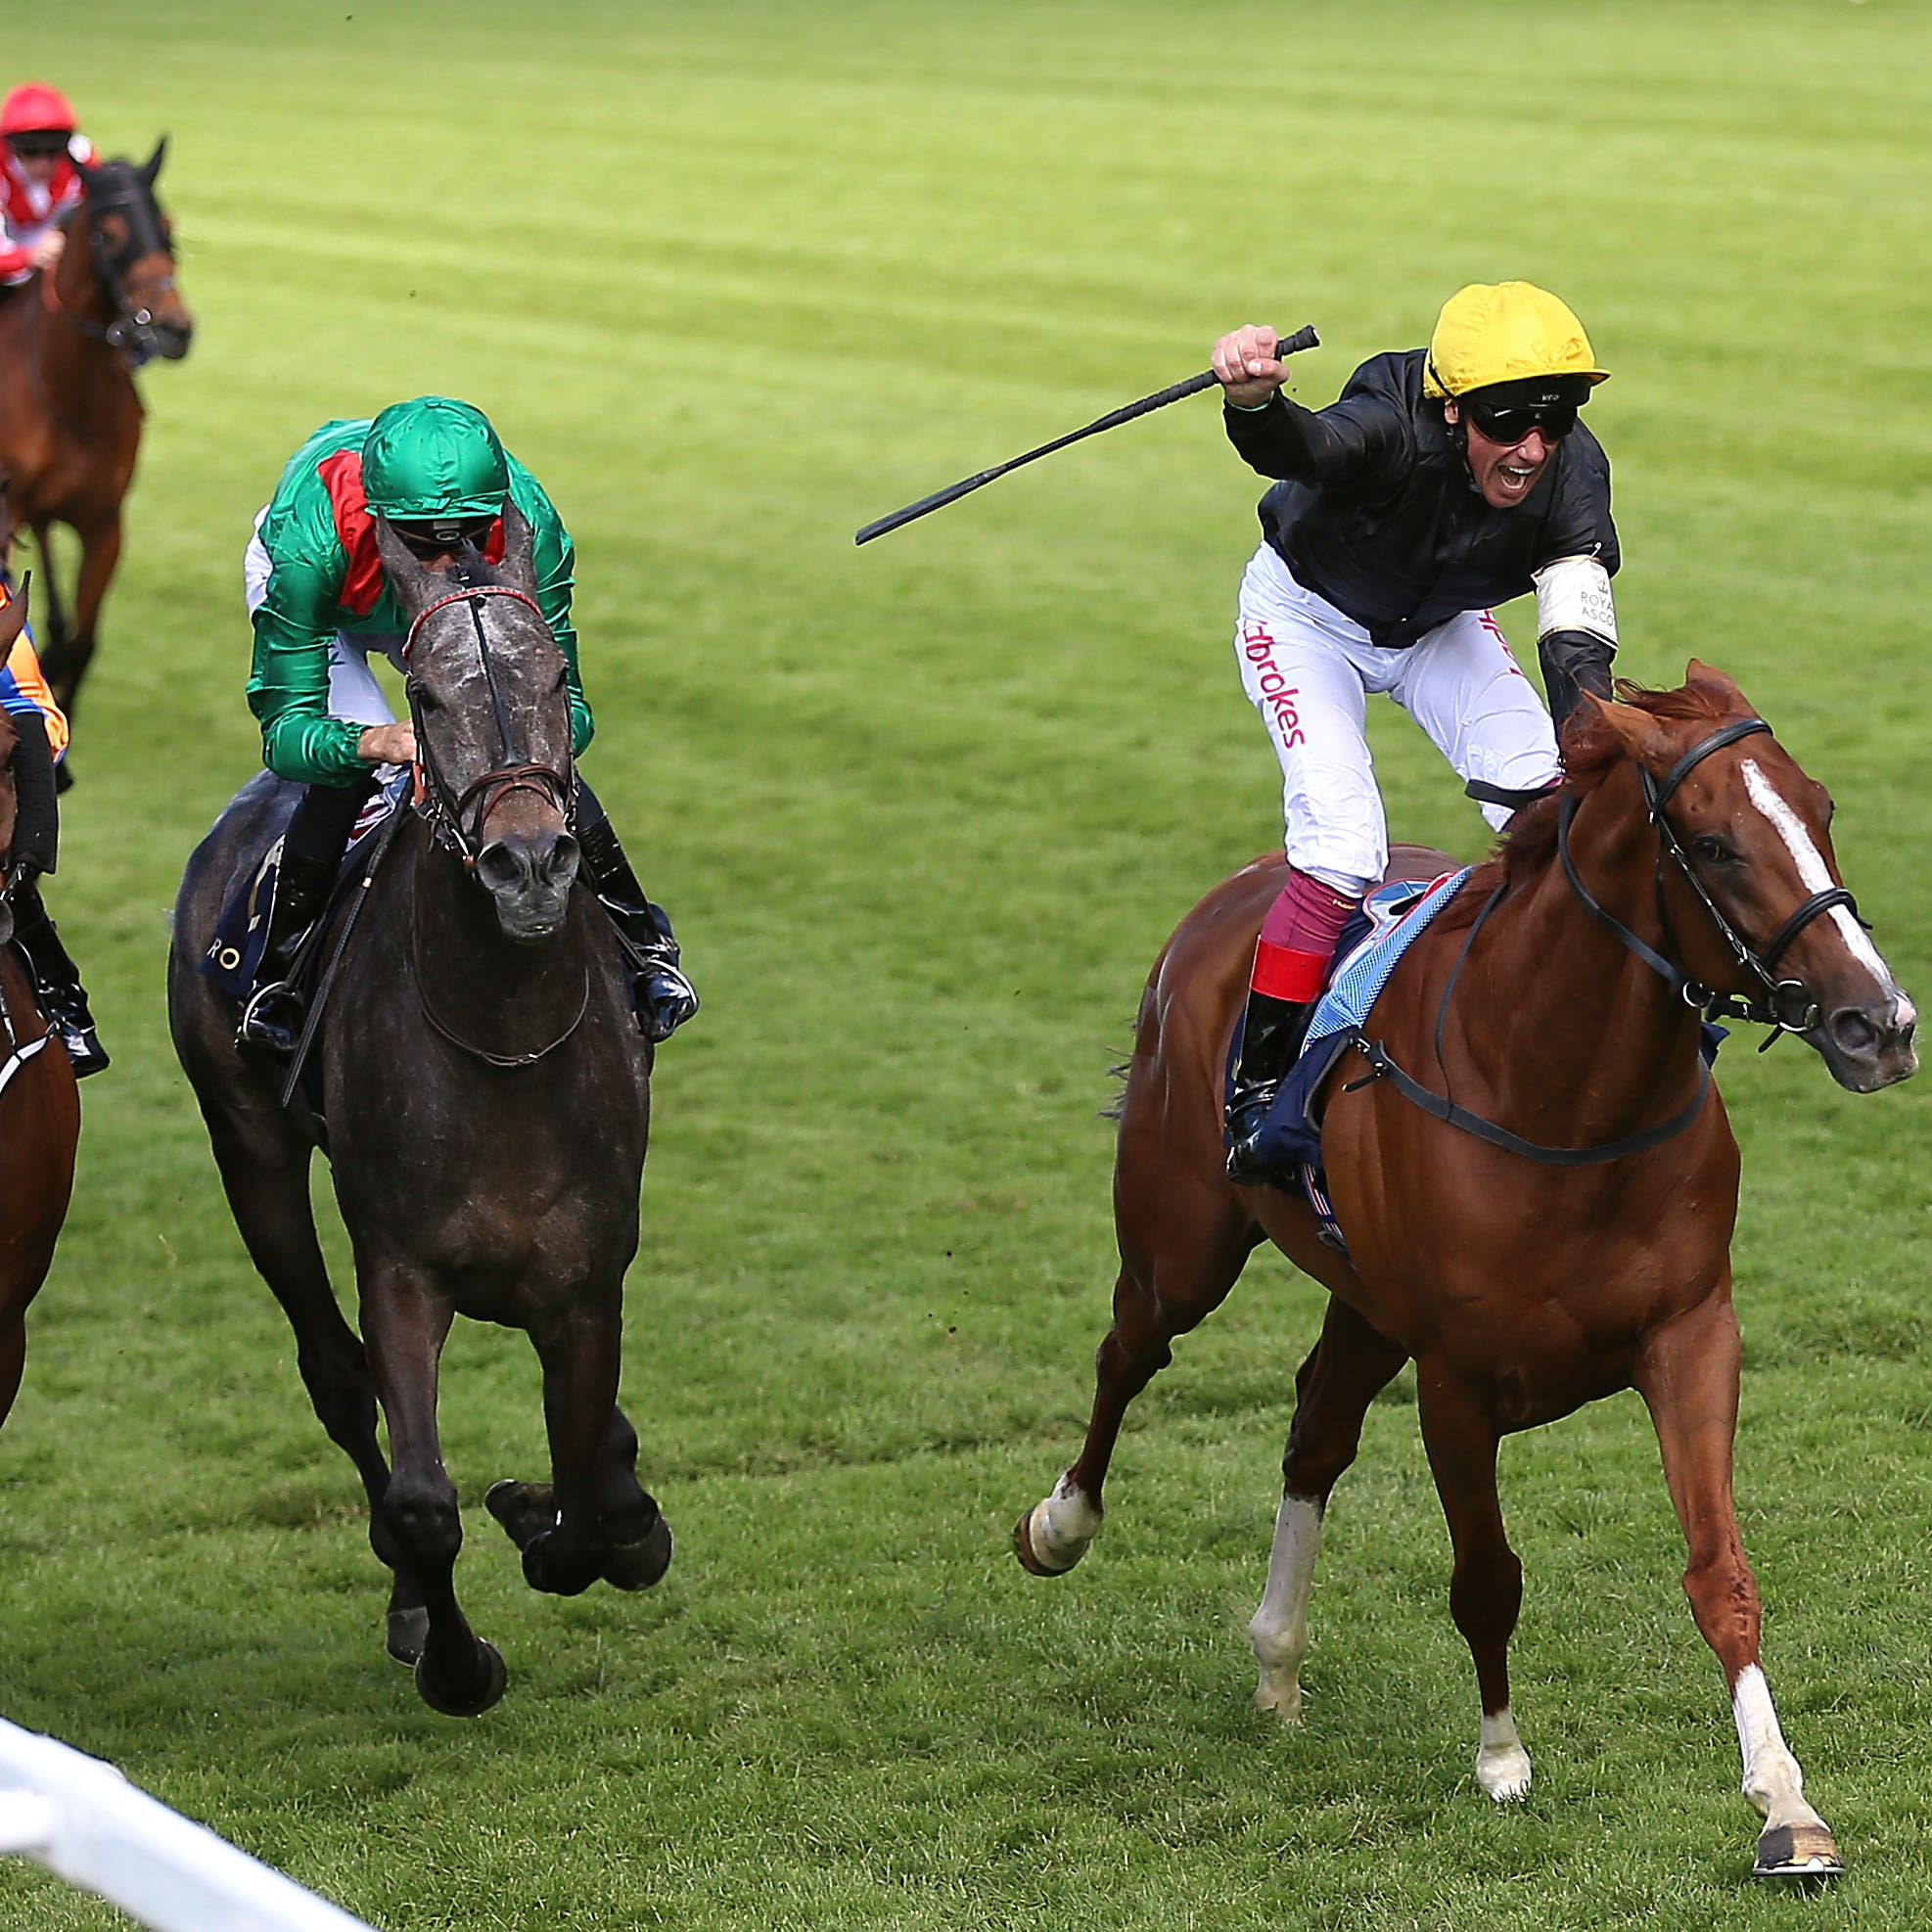 Stradivarius was a game winner of the Gold Cup last year